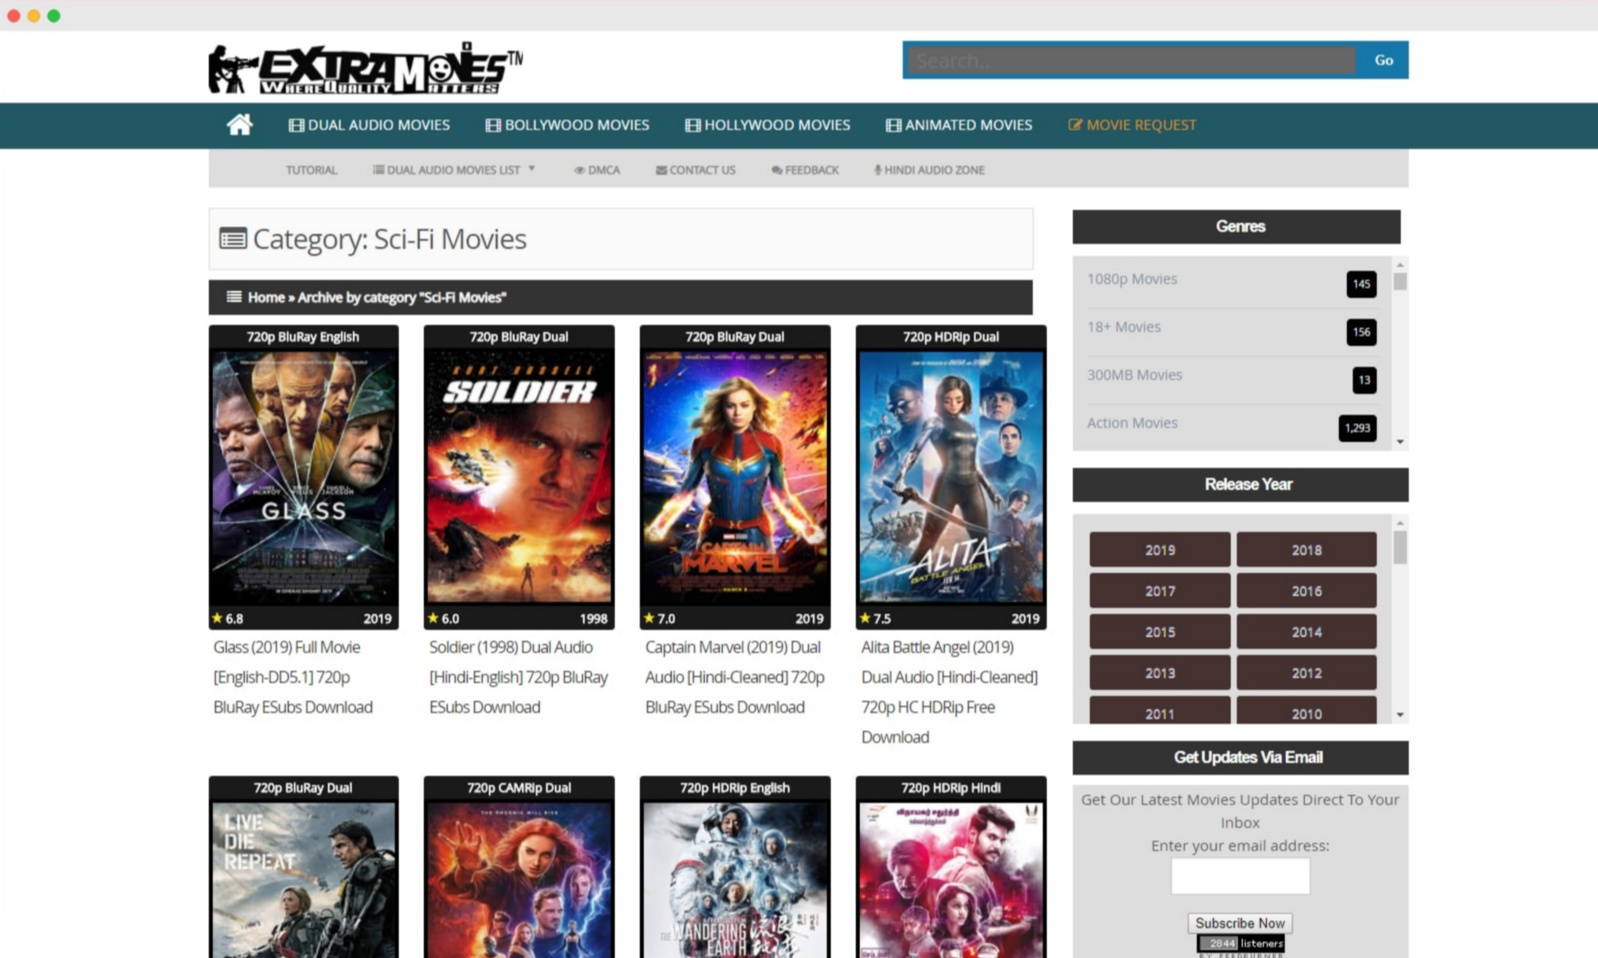 ExtraMovies - Download Movies Online, Hollywood, Bollywood Movies